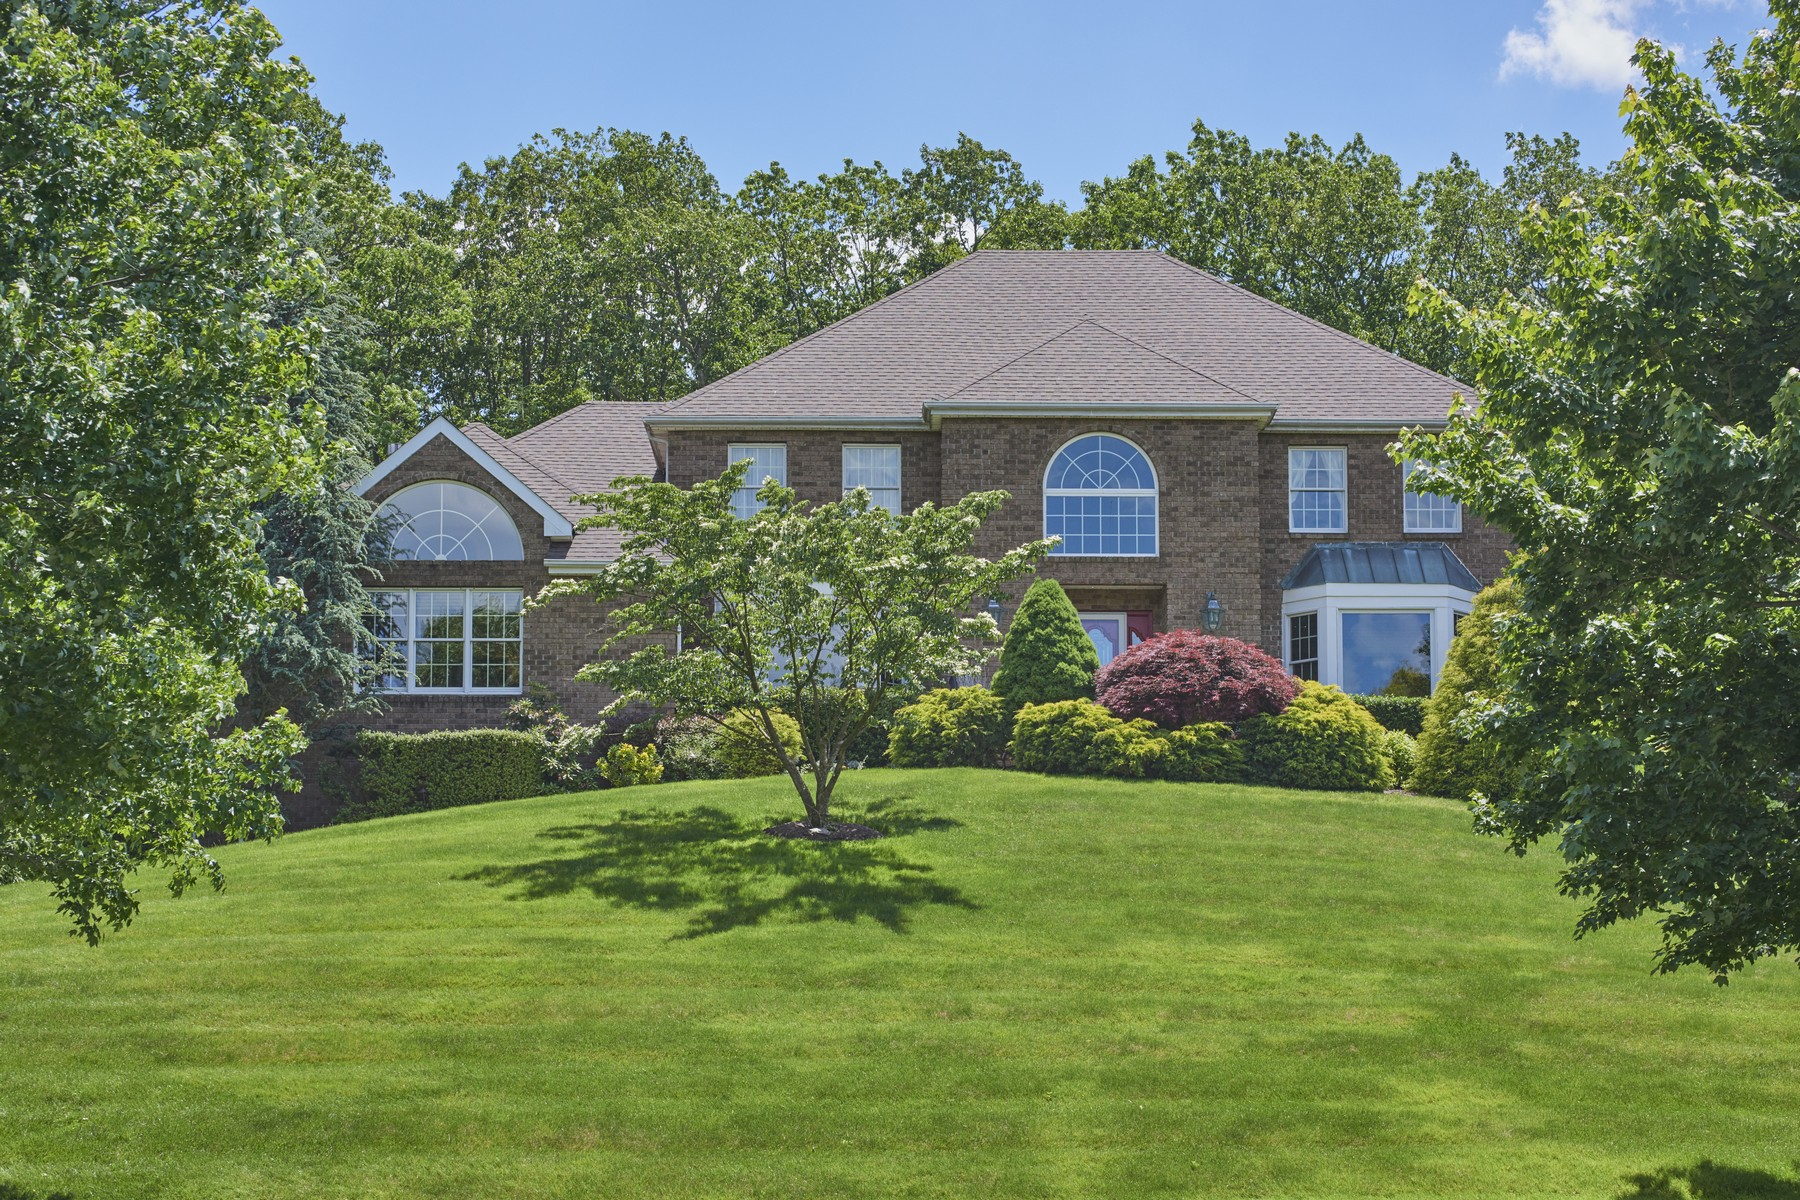 House for Sale at Wonderful and spacious 32 Wesley Ct Eatontown, New Jersey 07724 United States